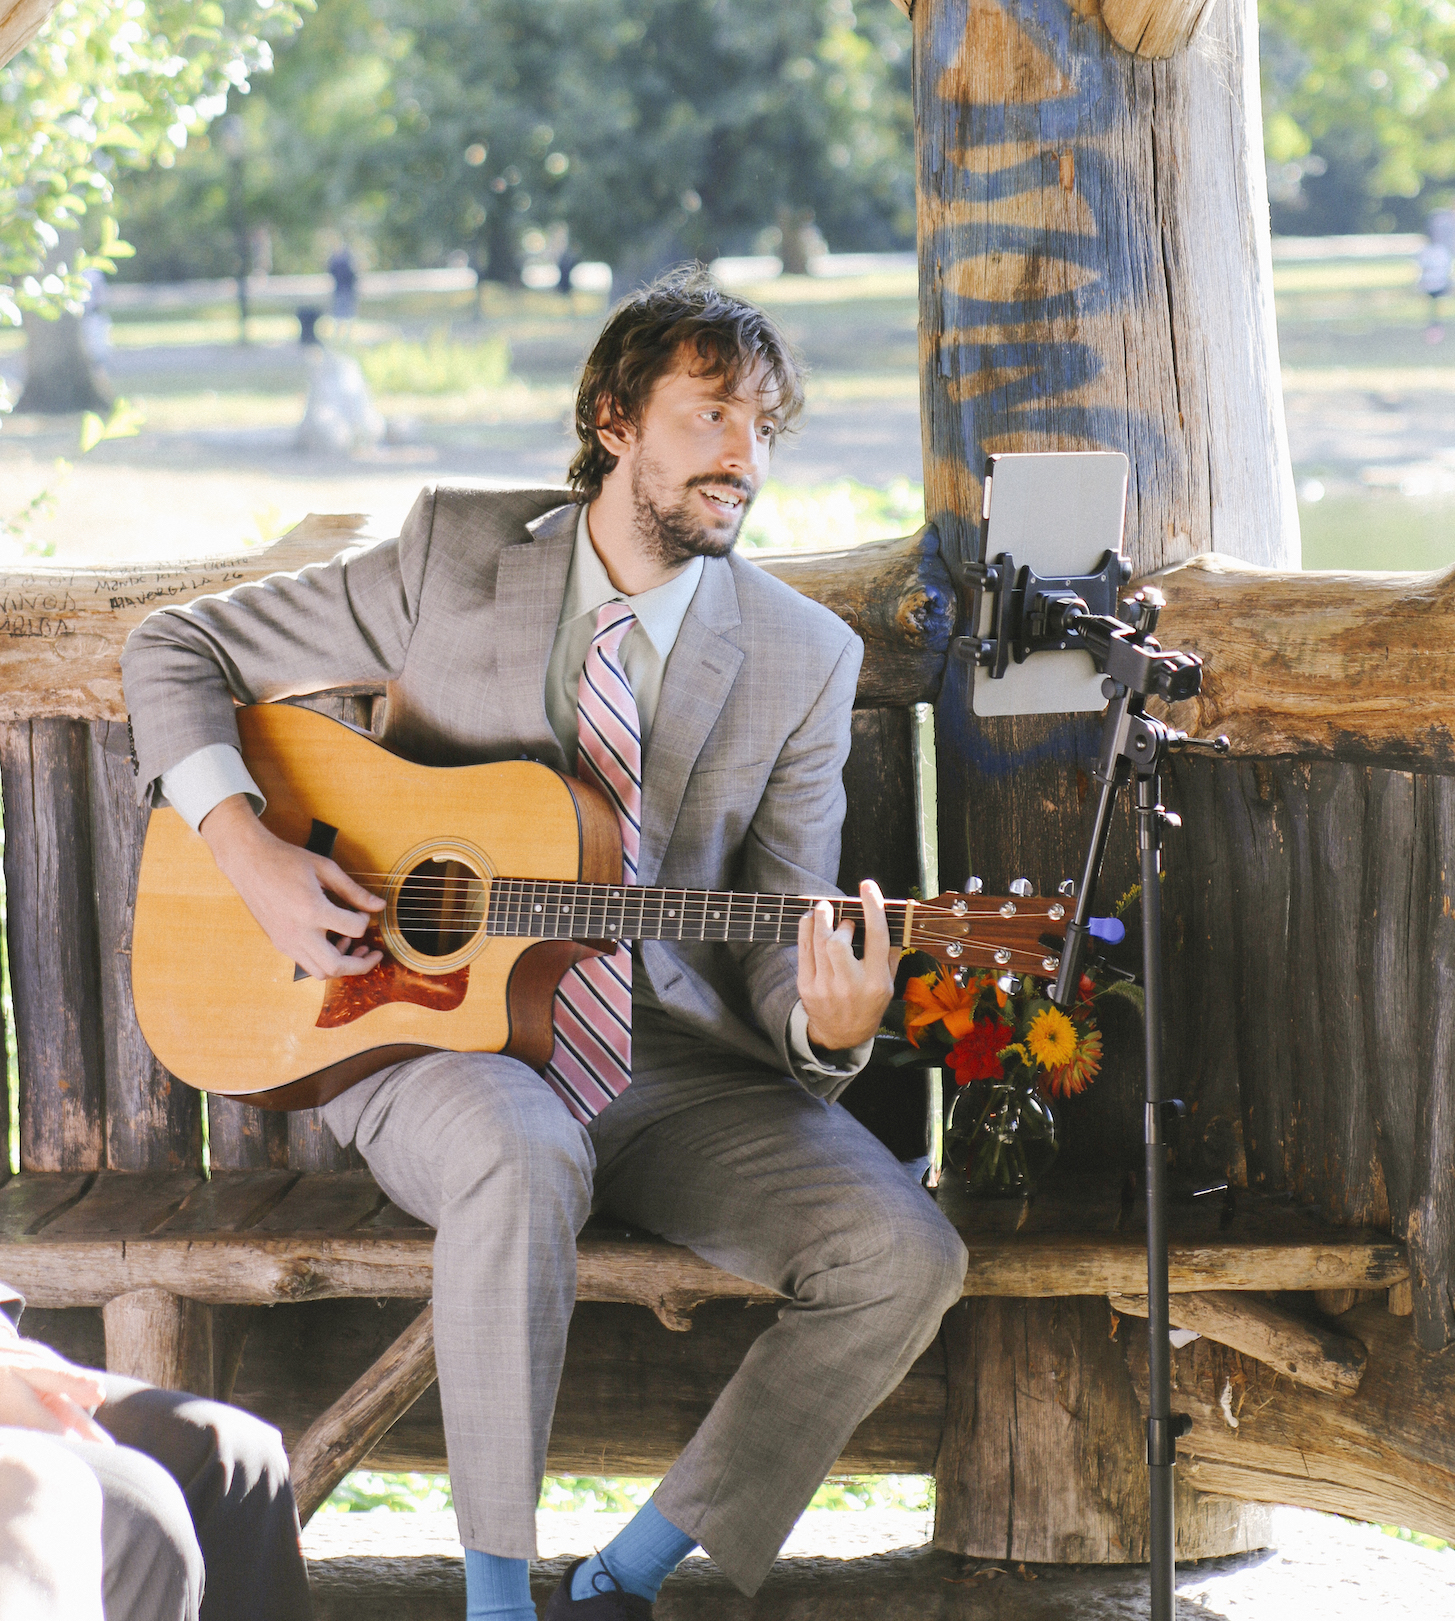 Singing and playing acoustic guitar for an outdoor ceremony in Central Park